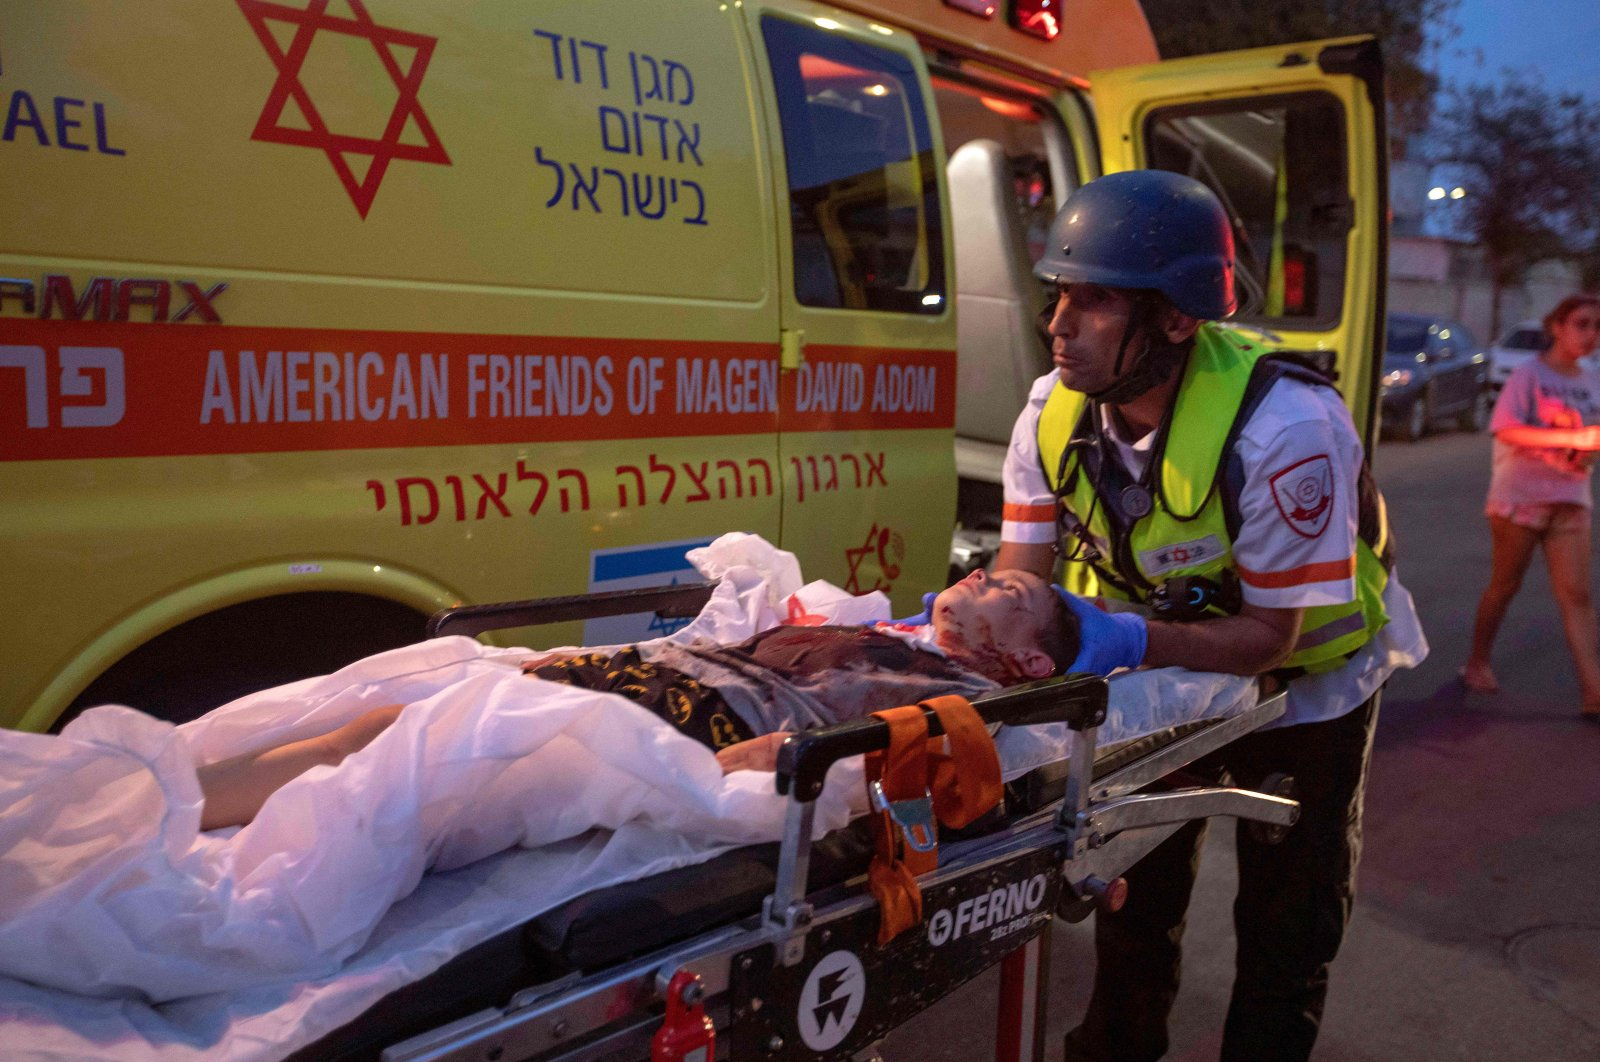 Rescue workers evacuate a an injured youngster by ambulance, amidst a rocket attack from the Gaza Strip, in the southern Israeli city of Sderot, on May 12, 2021. (AFP File Photo)